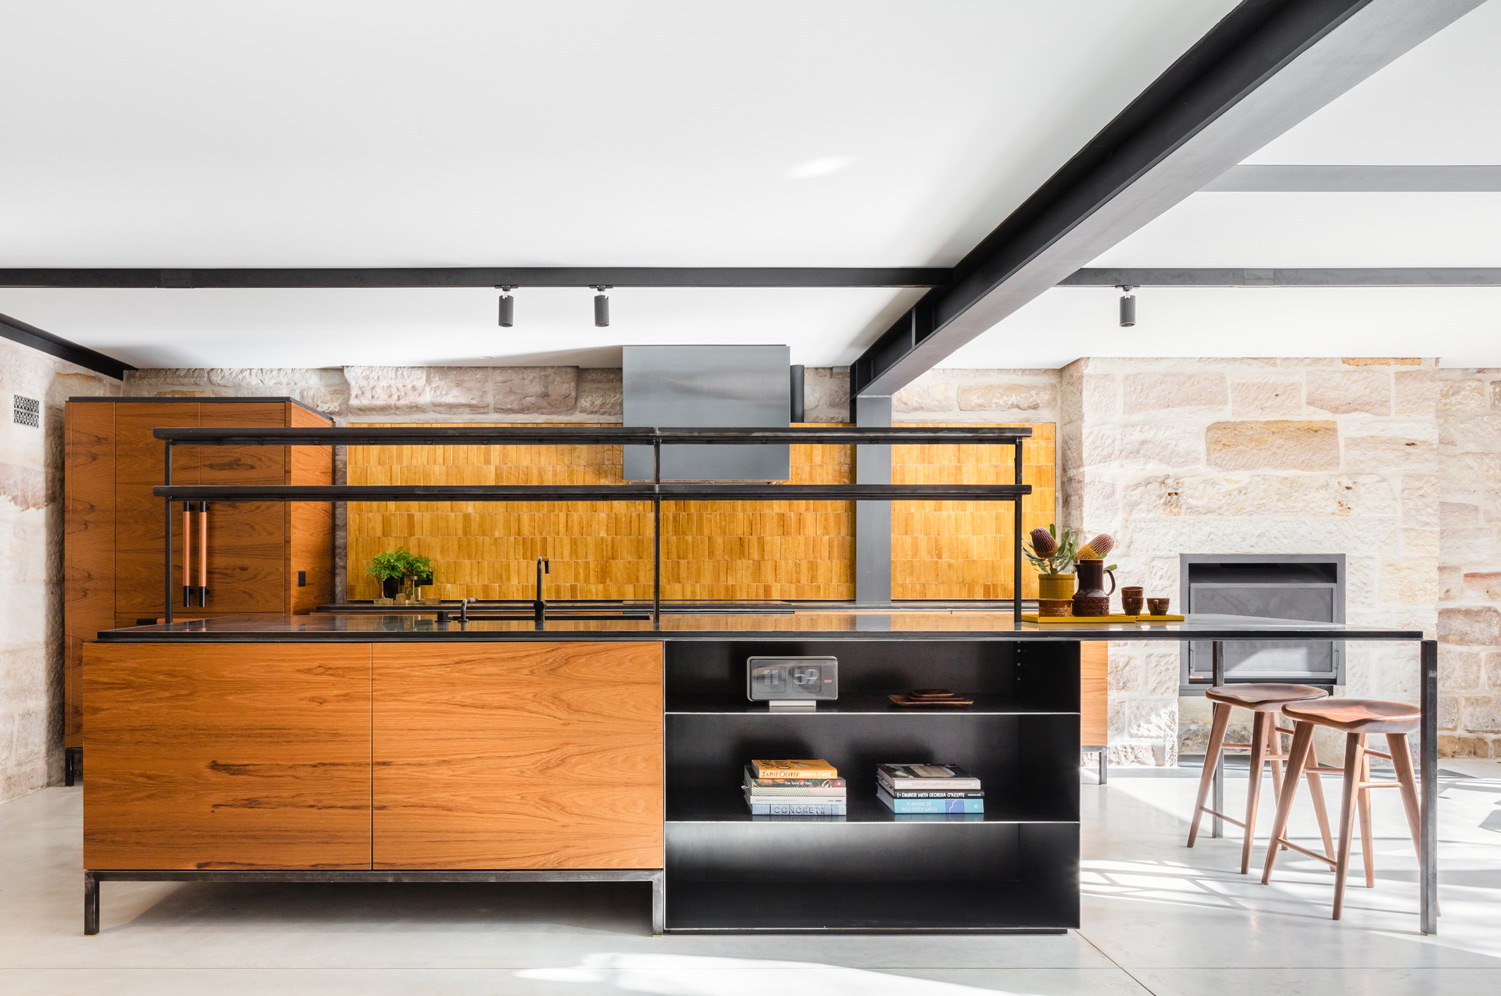 In The Paddington House, The Architects Appreciated The Flexibility Of The Fisher & Paykel Cooldrawer's Functionality In A Fami